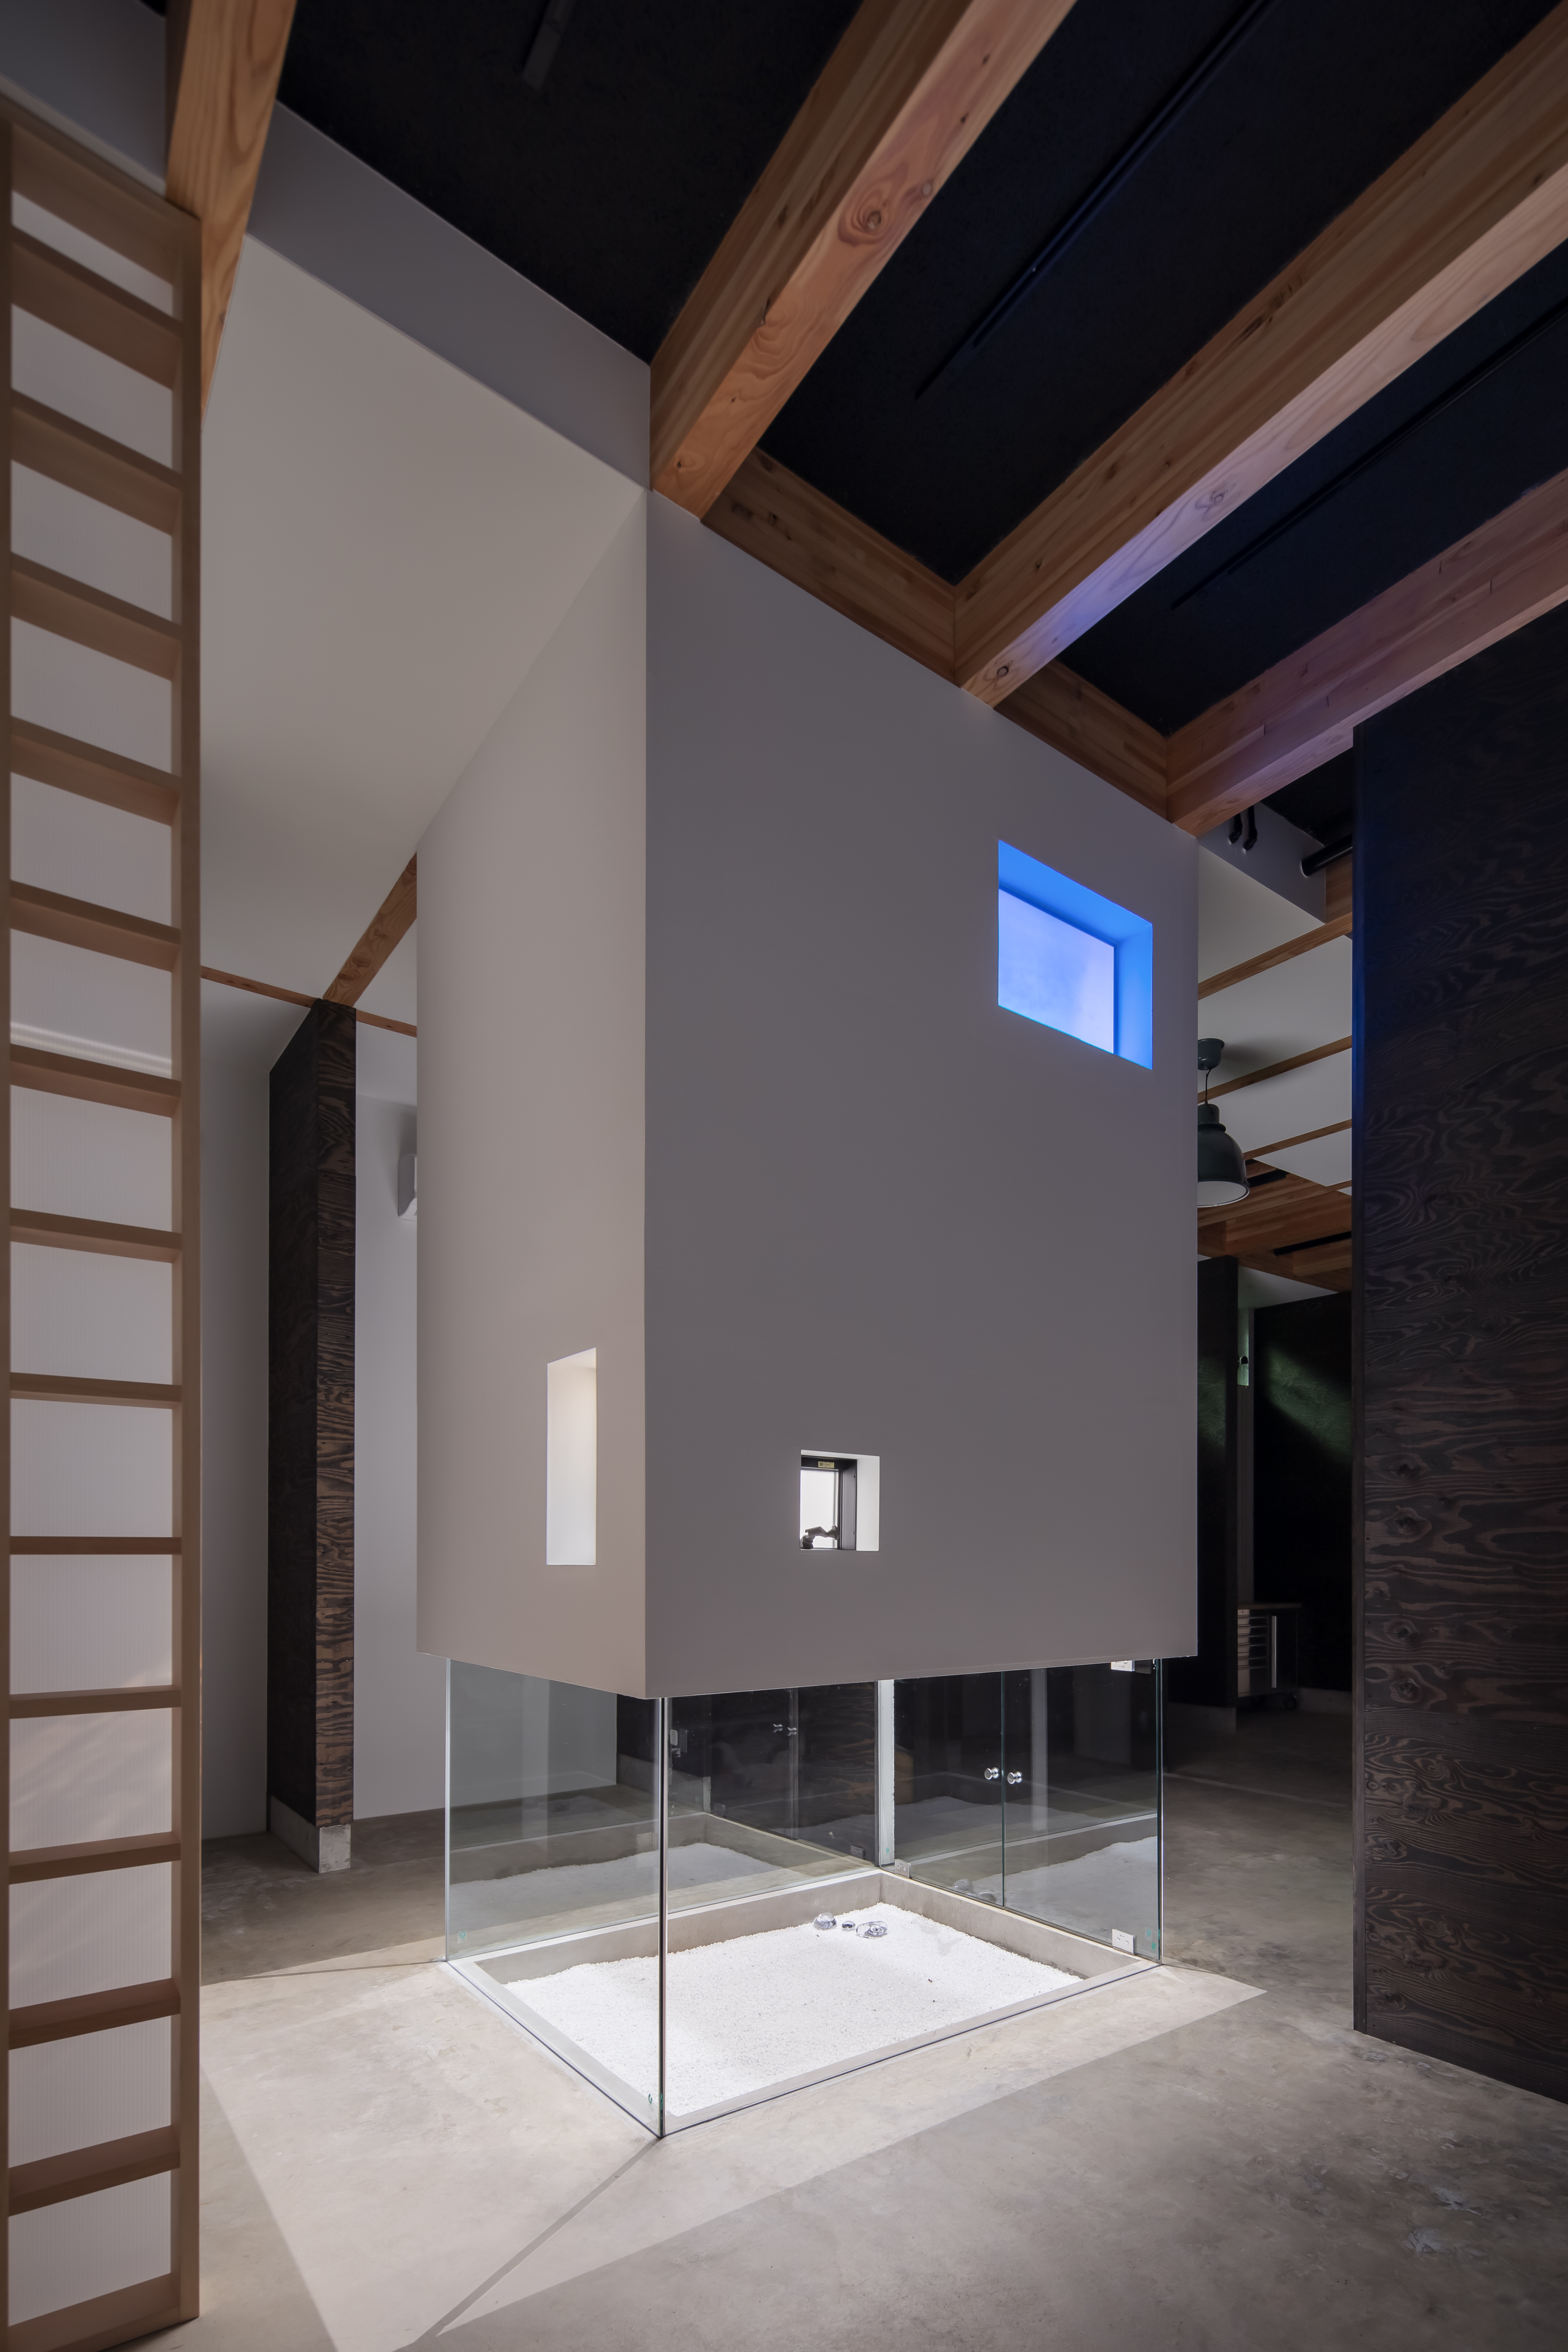 Updraft Air Shaft (Exhibition space side/night view)